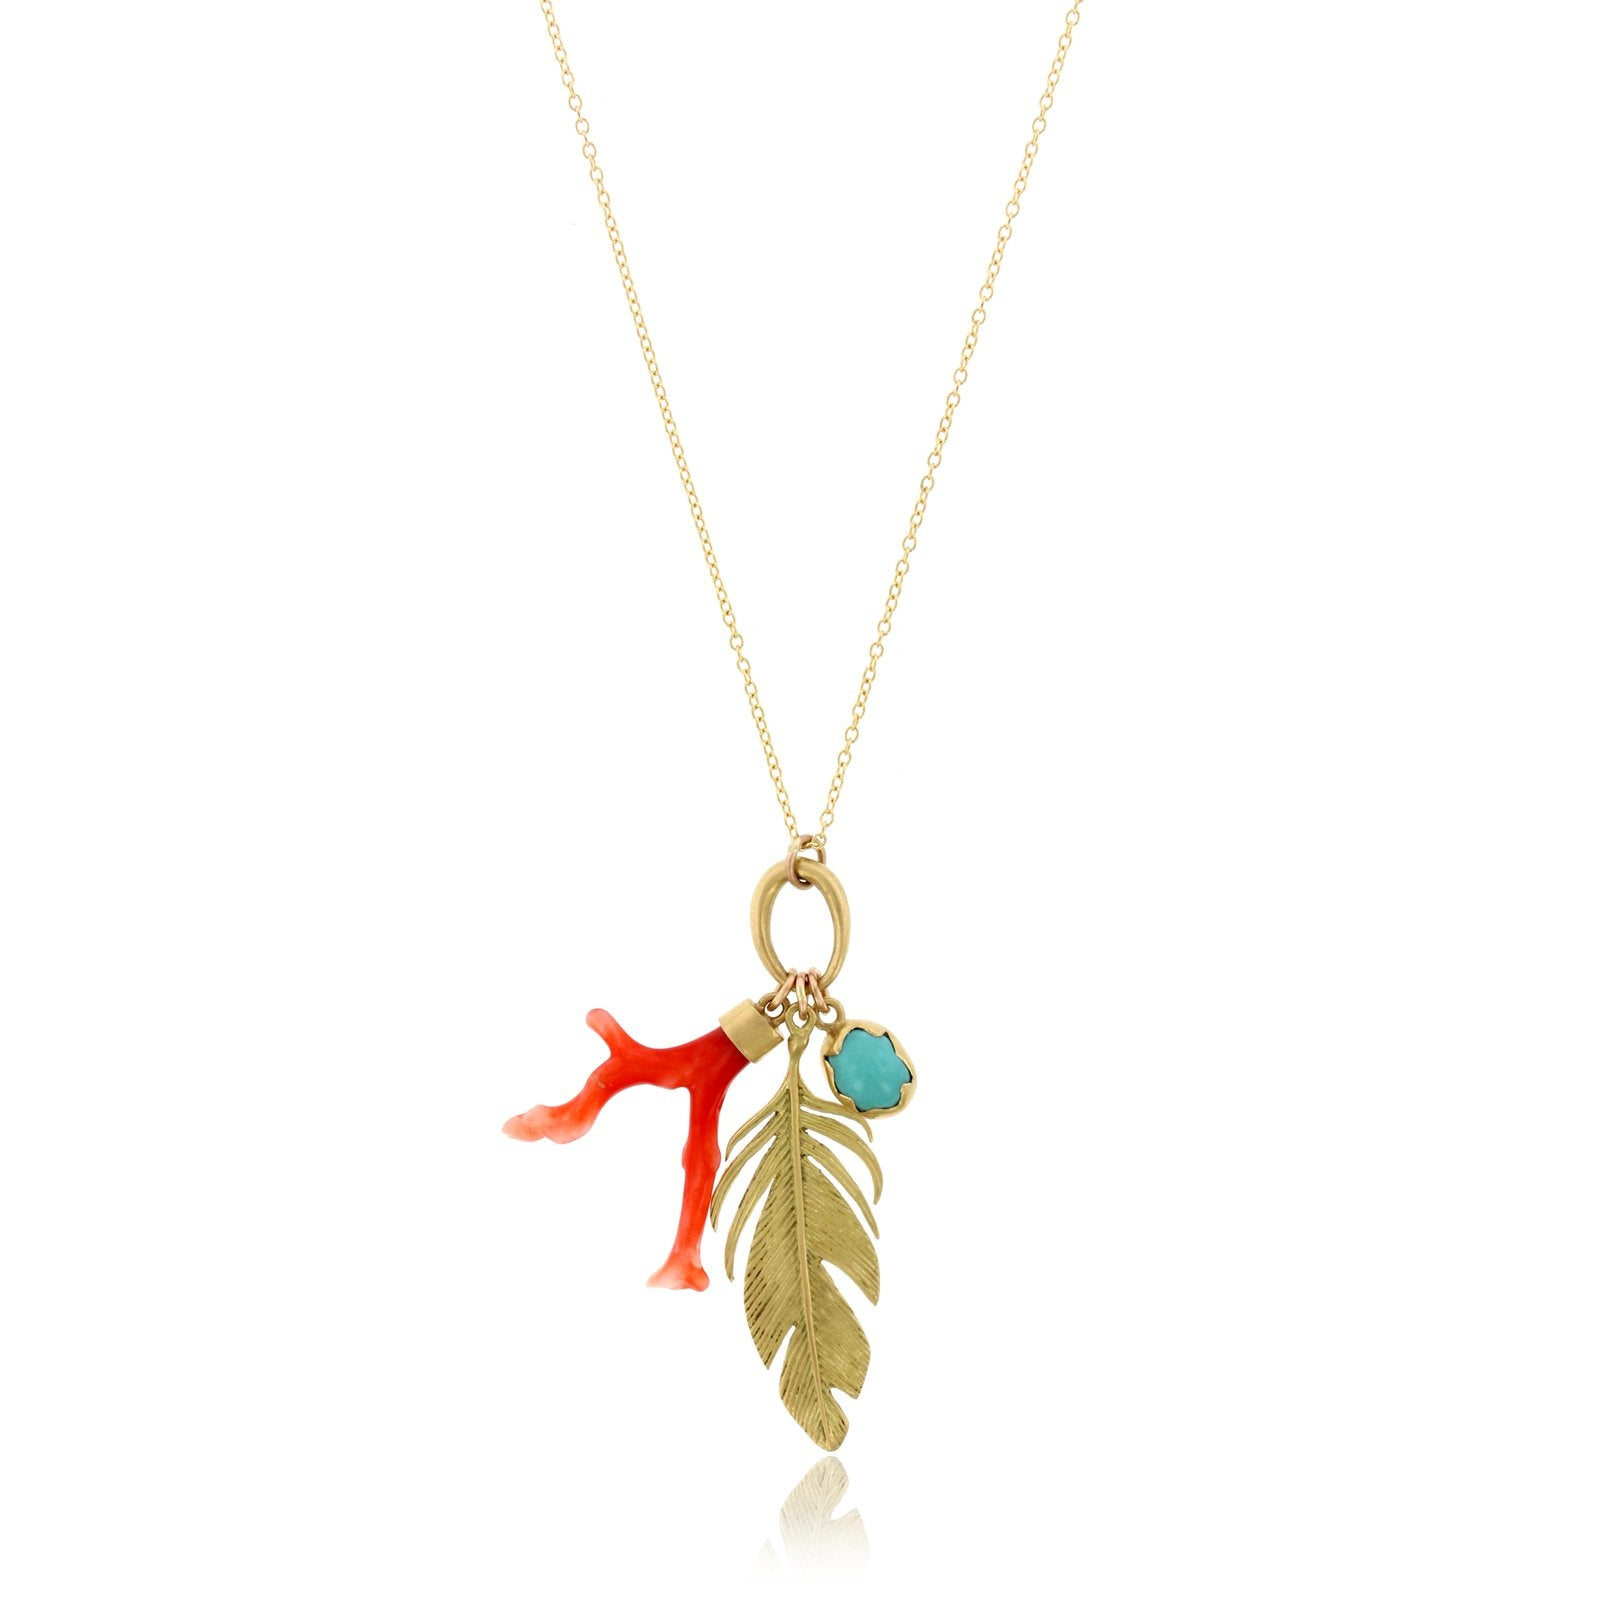 18K Yellow Gold Beach Treasure Pendant